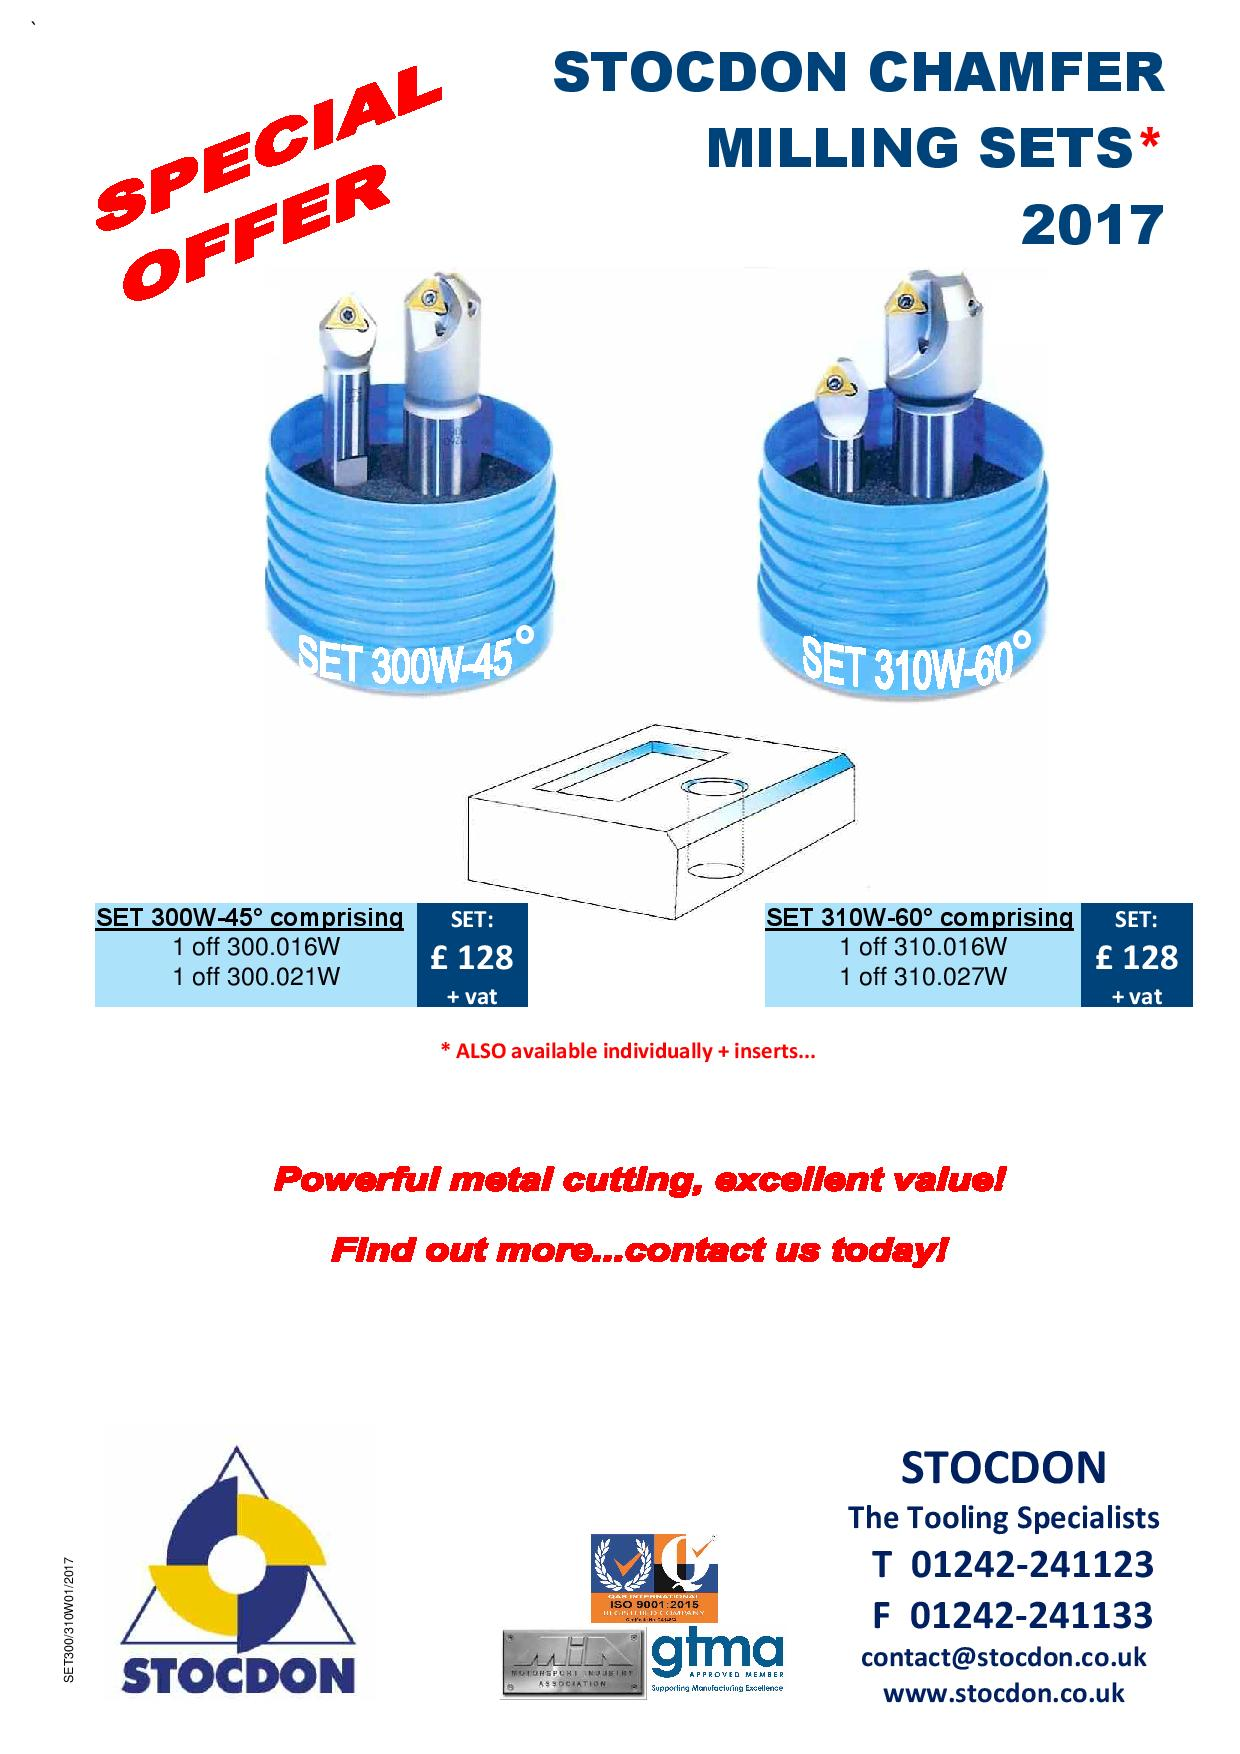 Stocdon-Chamfer-MILLING-SETS-300-310W-Jan-2017-page-001.jpg